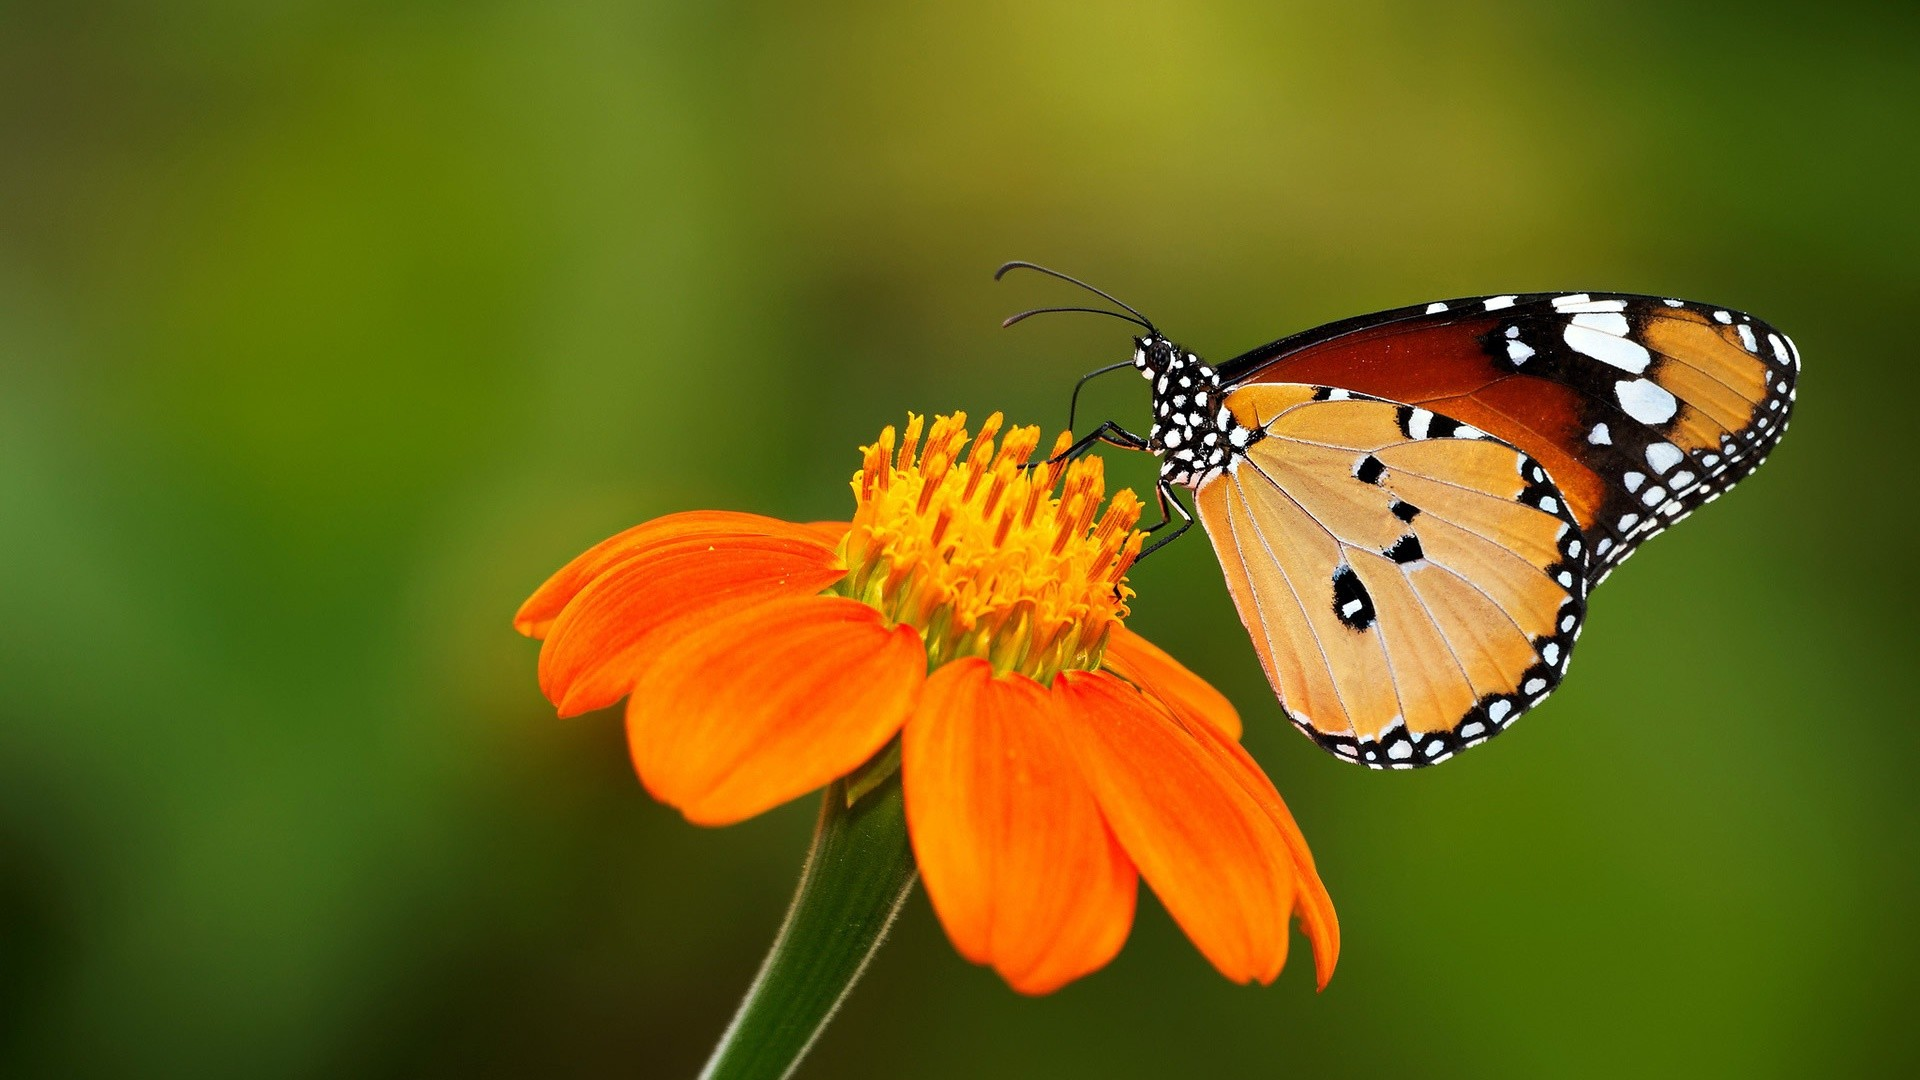 from flower and butterfly wallpaper wallpaper flower and butterfly ...